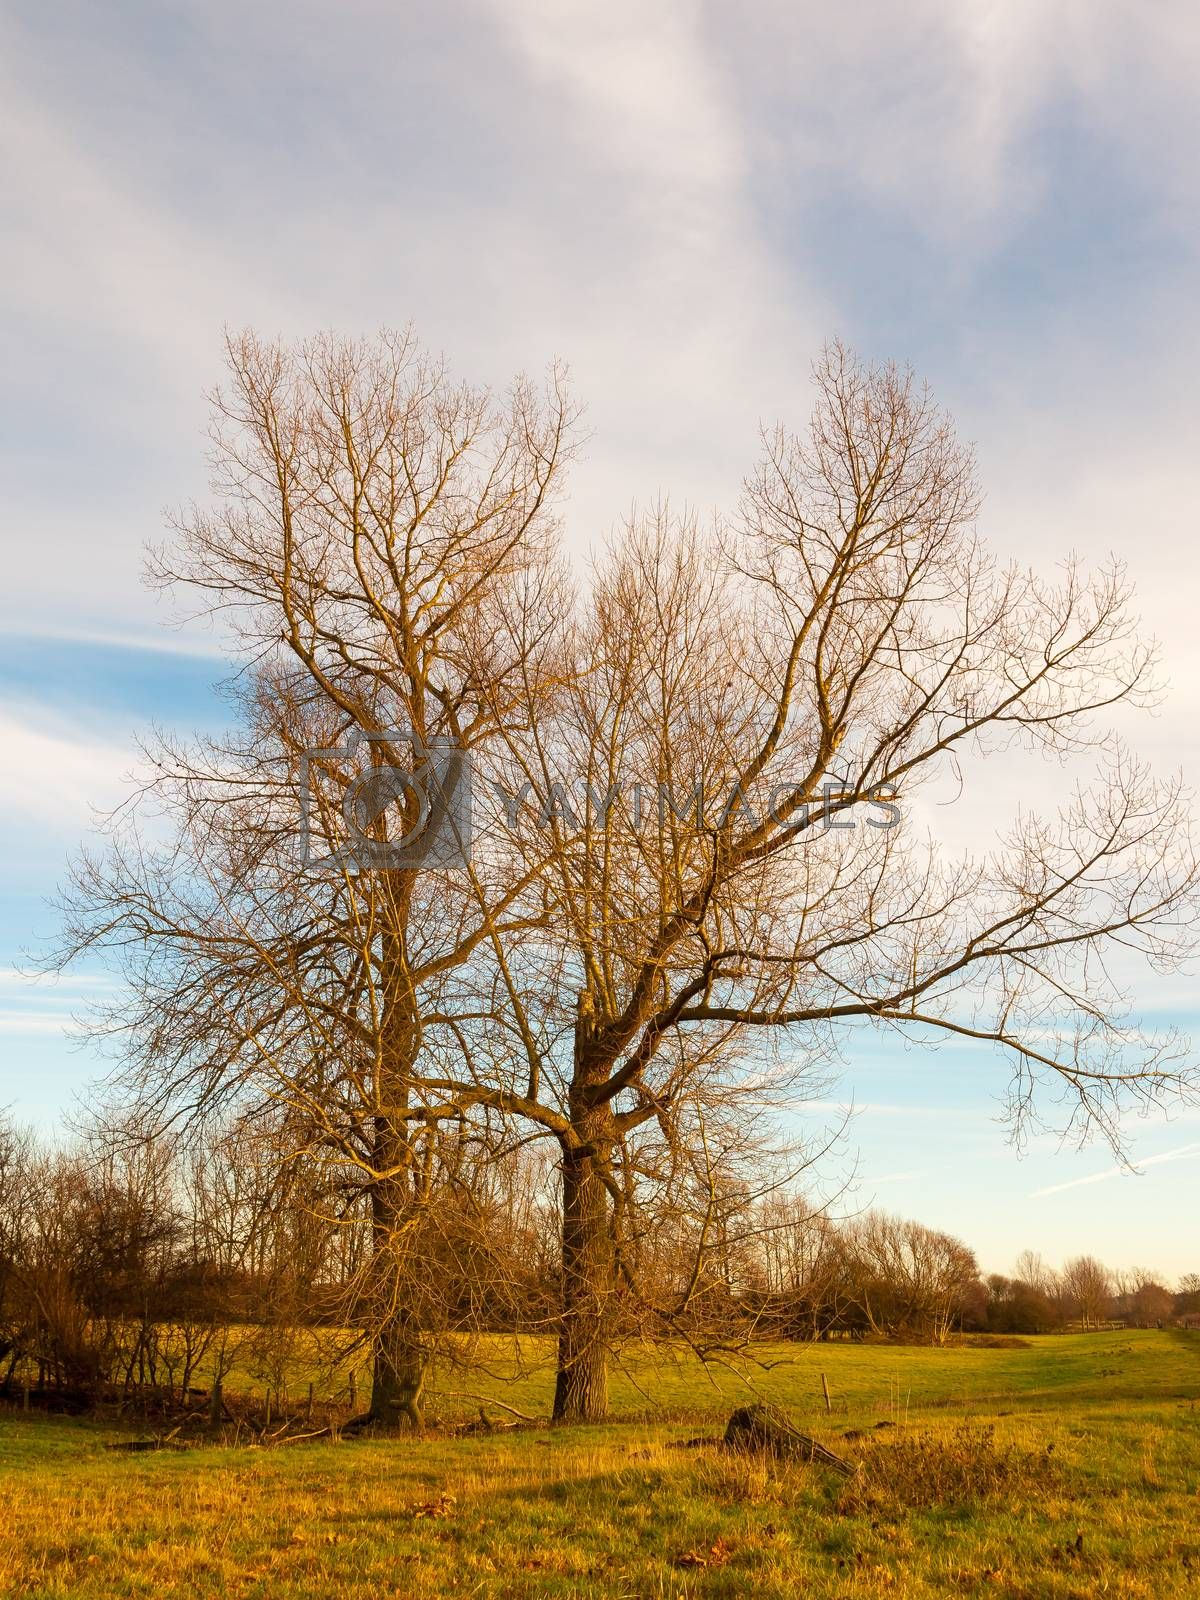 bare autumn winter tree outside landscape field sky cloudy blue  by callumrc